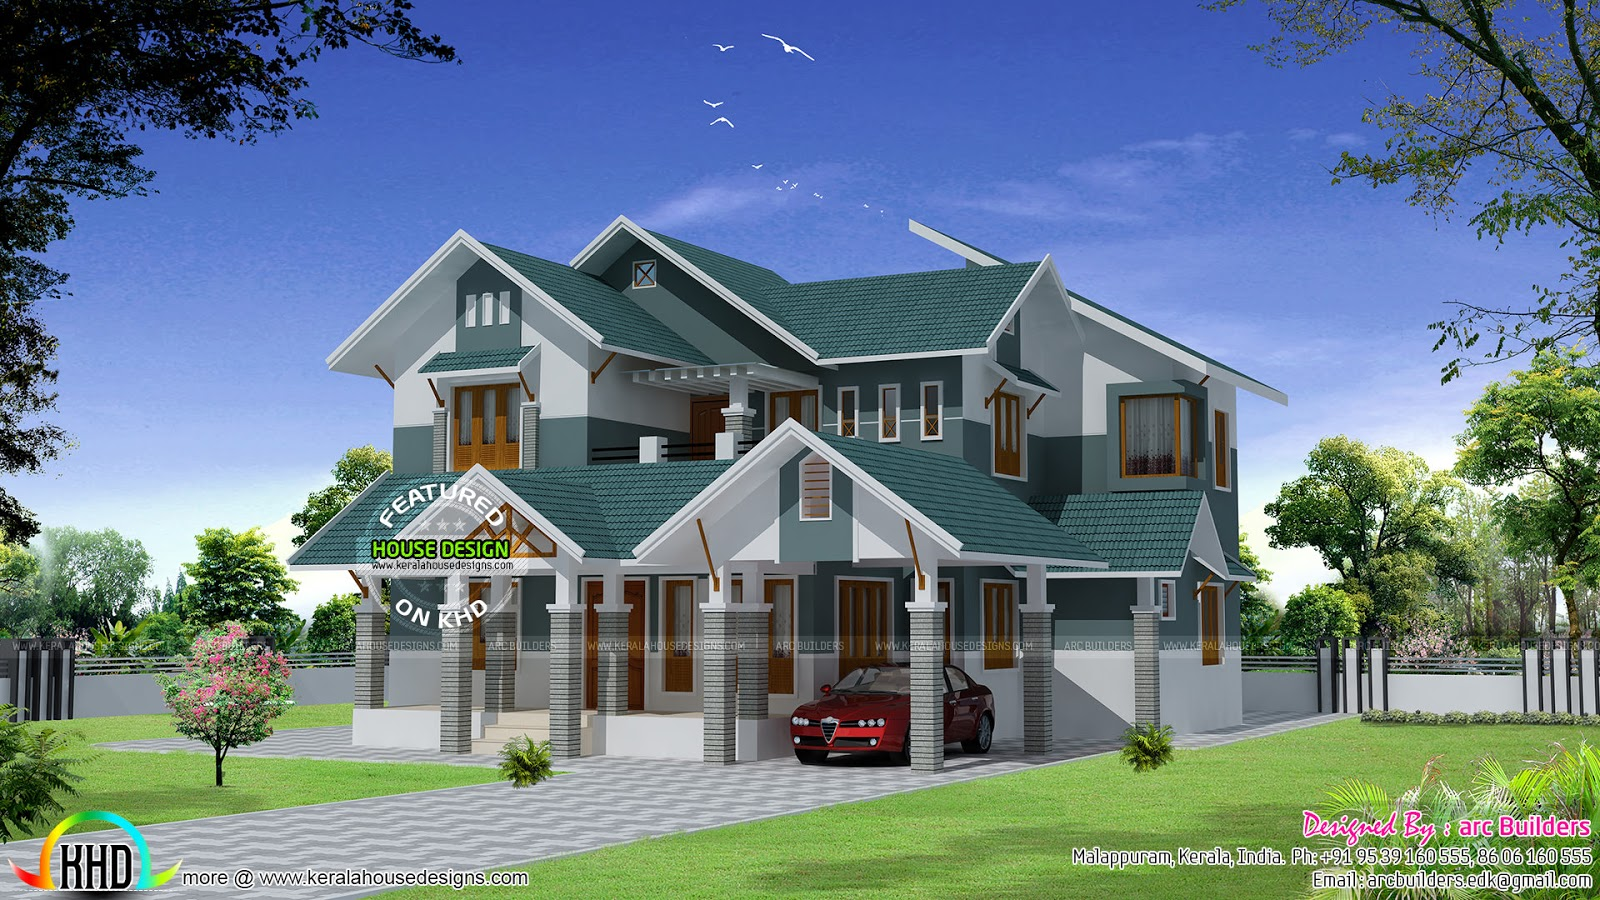 Sloping roof modern home design kerala home design and for Slope home design